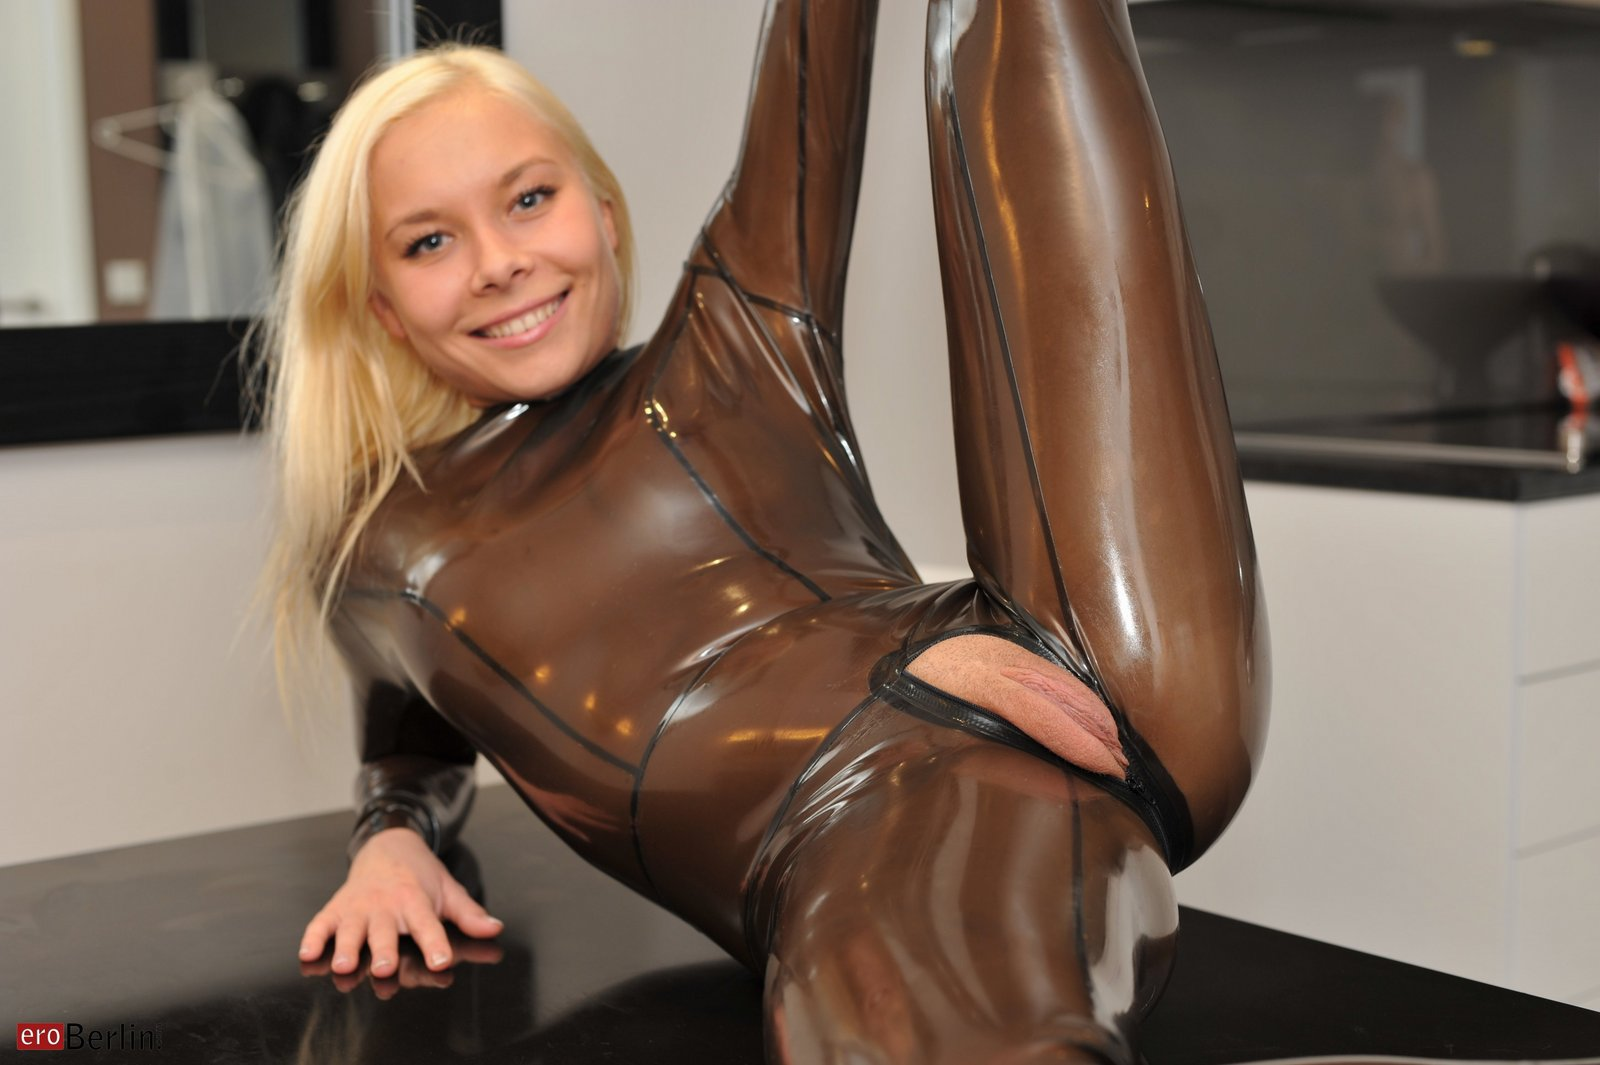 Hot girl in latex